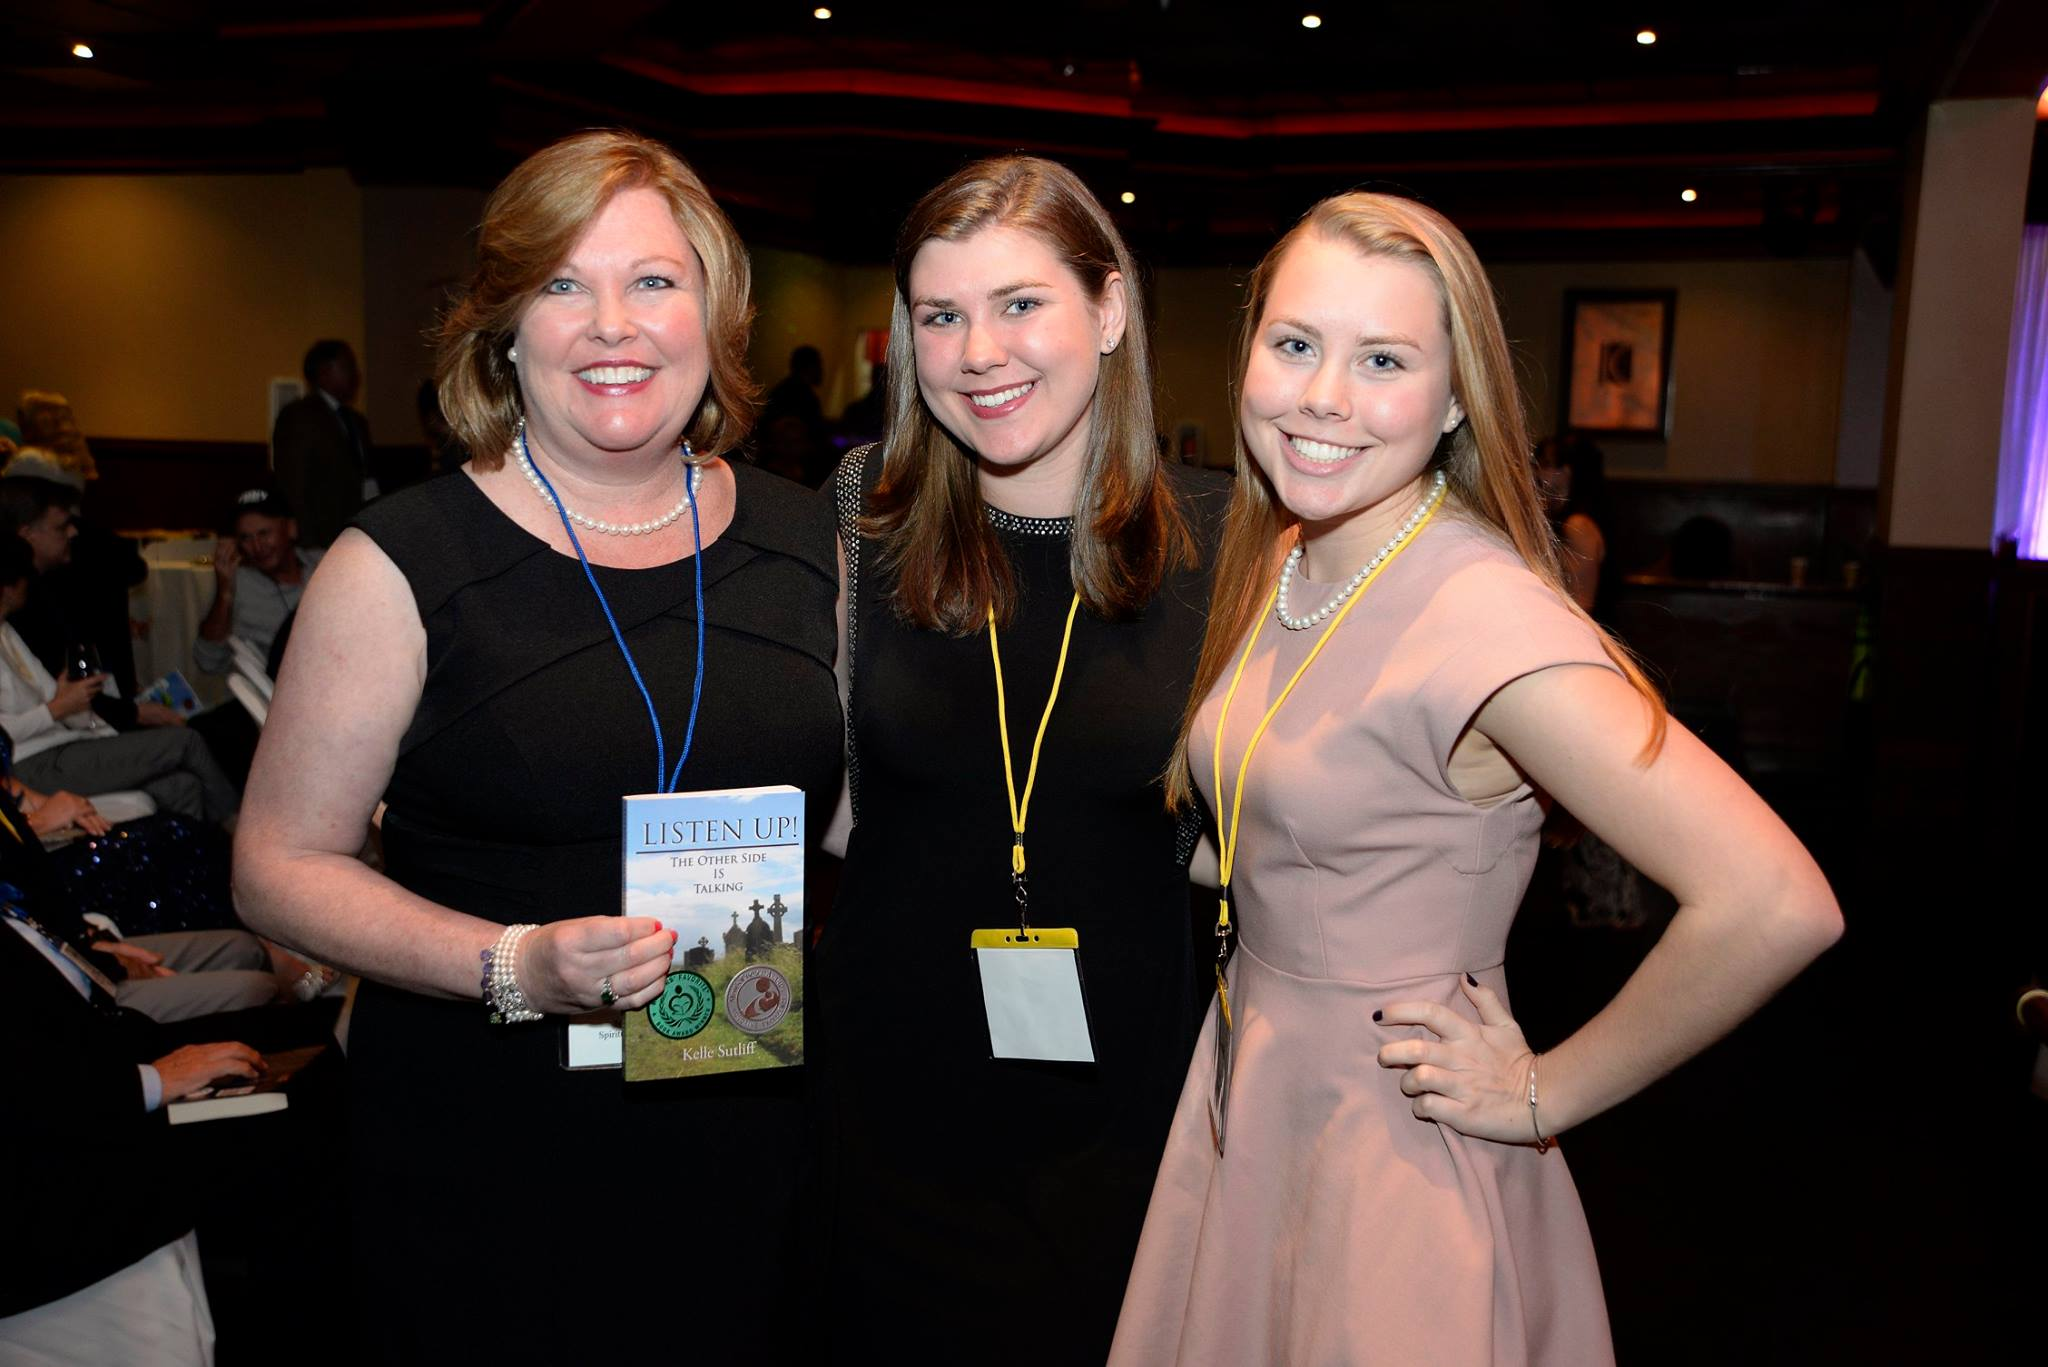 Kelle Sutliff and Daughters at Readers' Favorite Award Ceremony